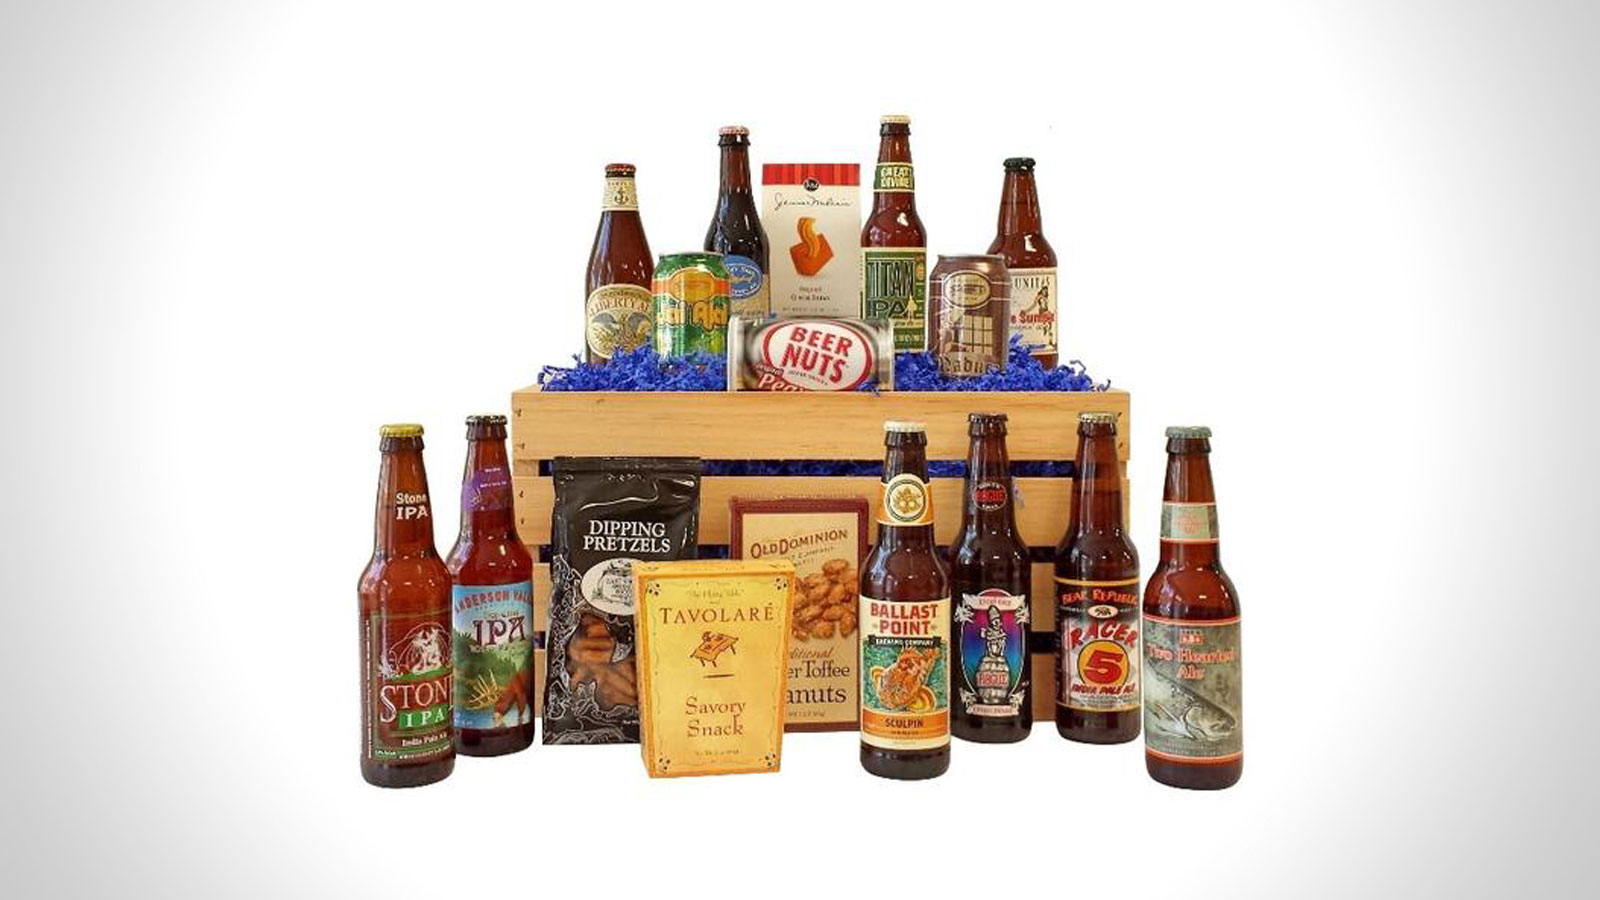 Give Them Beer Gift Baskets | Gifts For Men | Gift Baskets For Men